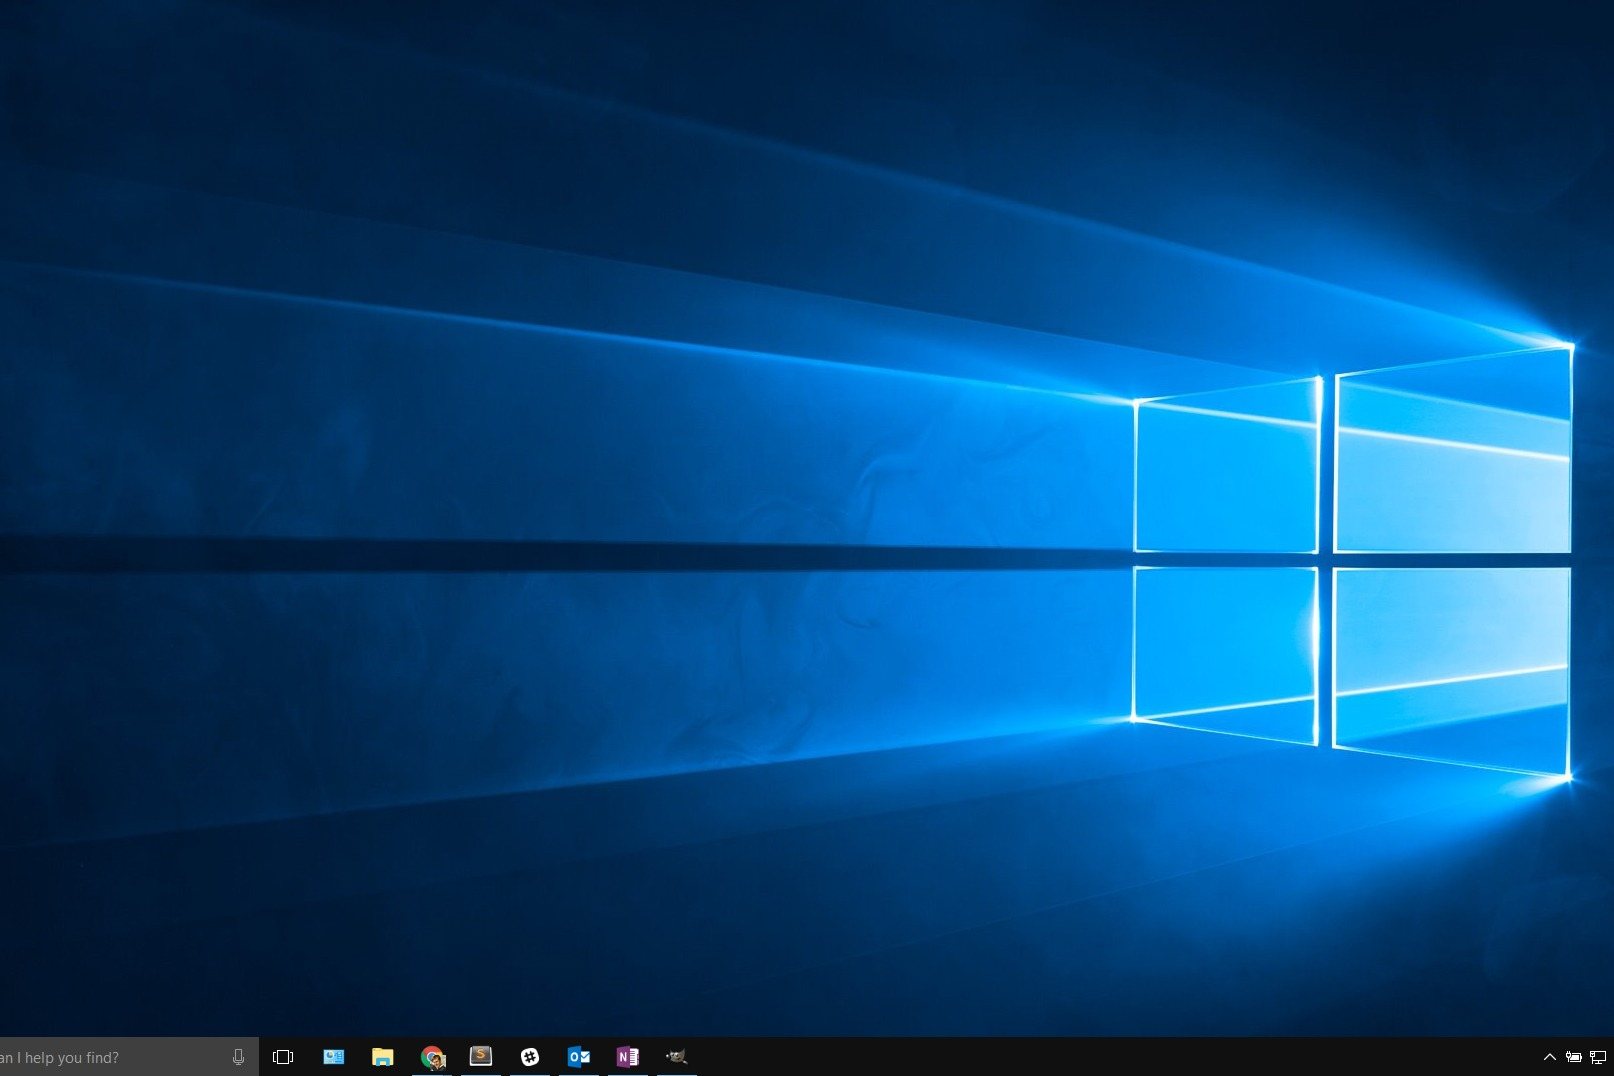 How to show the taskbar on only one display in Windows 10.